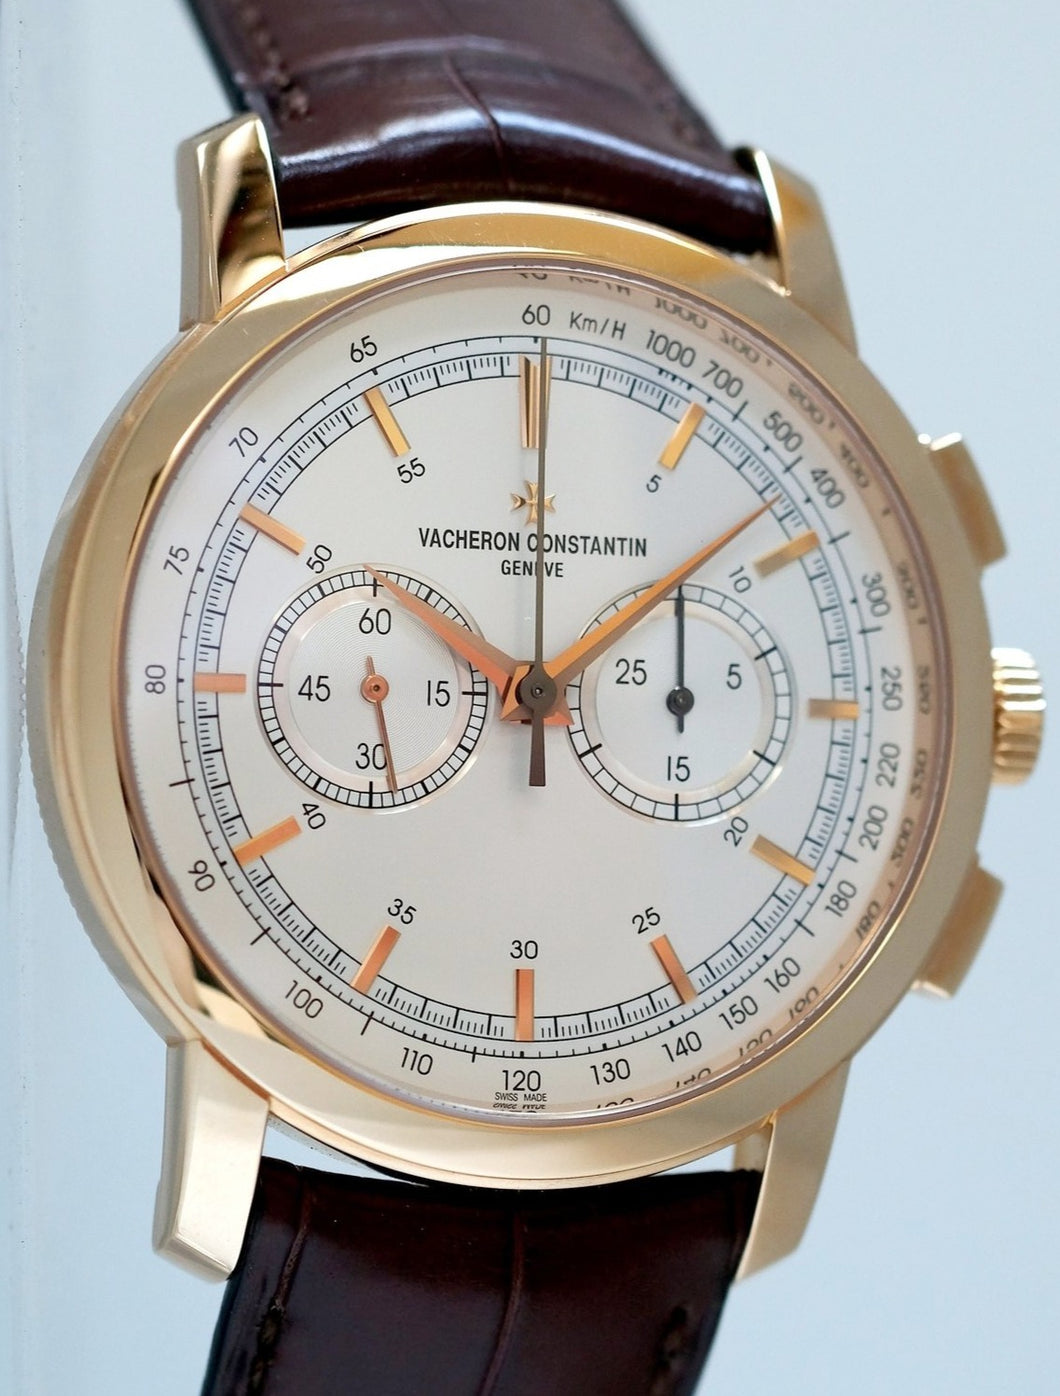 Vacheron Constantin Chronograph Traditionelle in Rose Gold